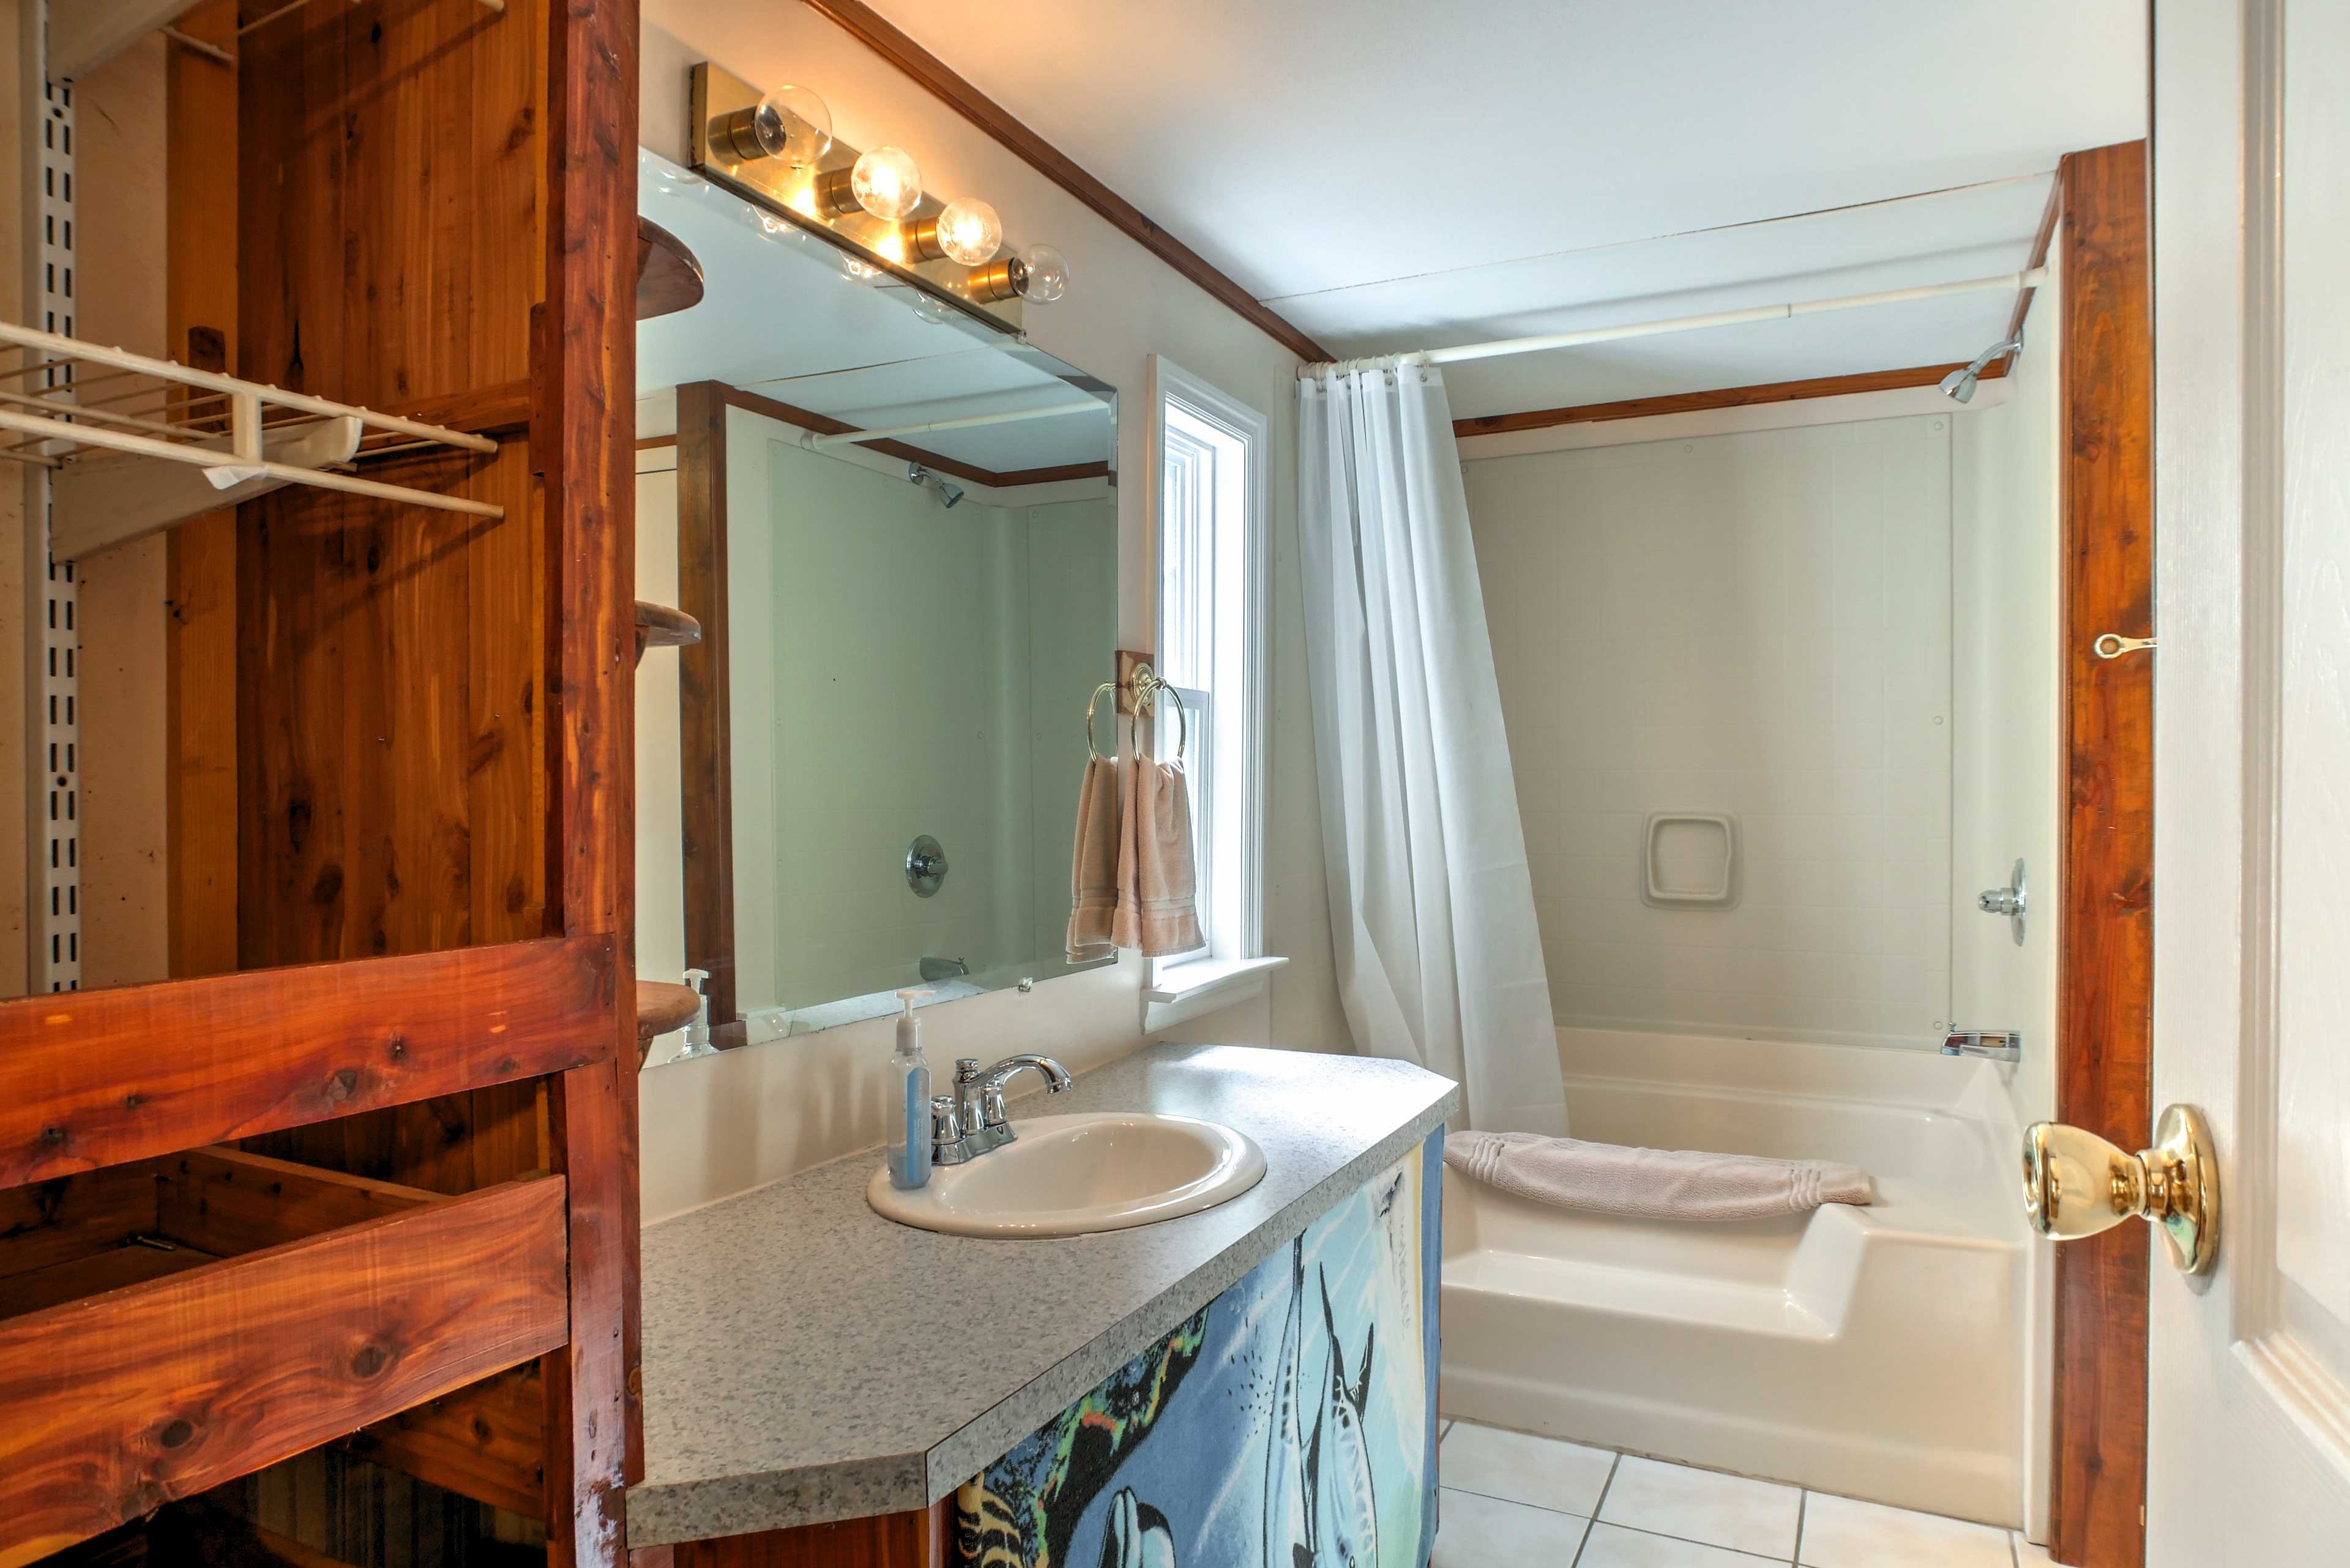 The second full bathroom hosts a shower/tub combo.